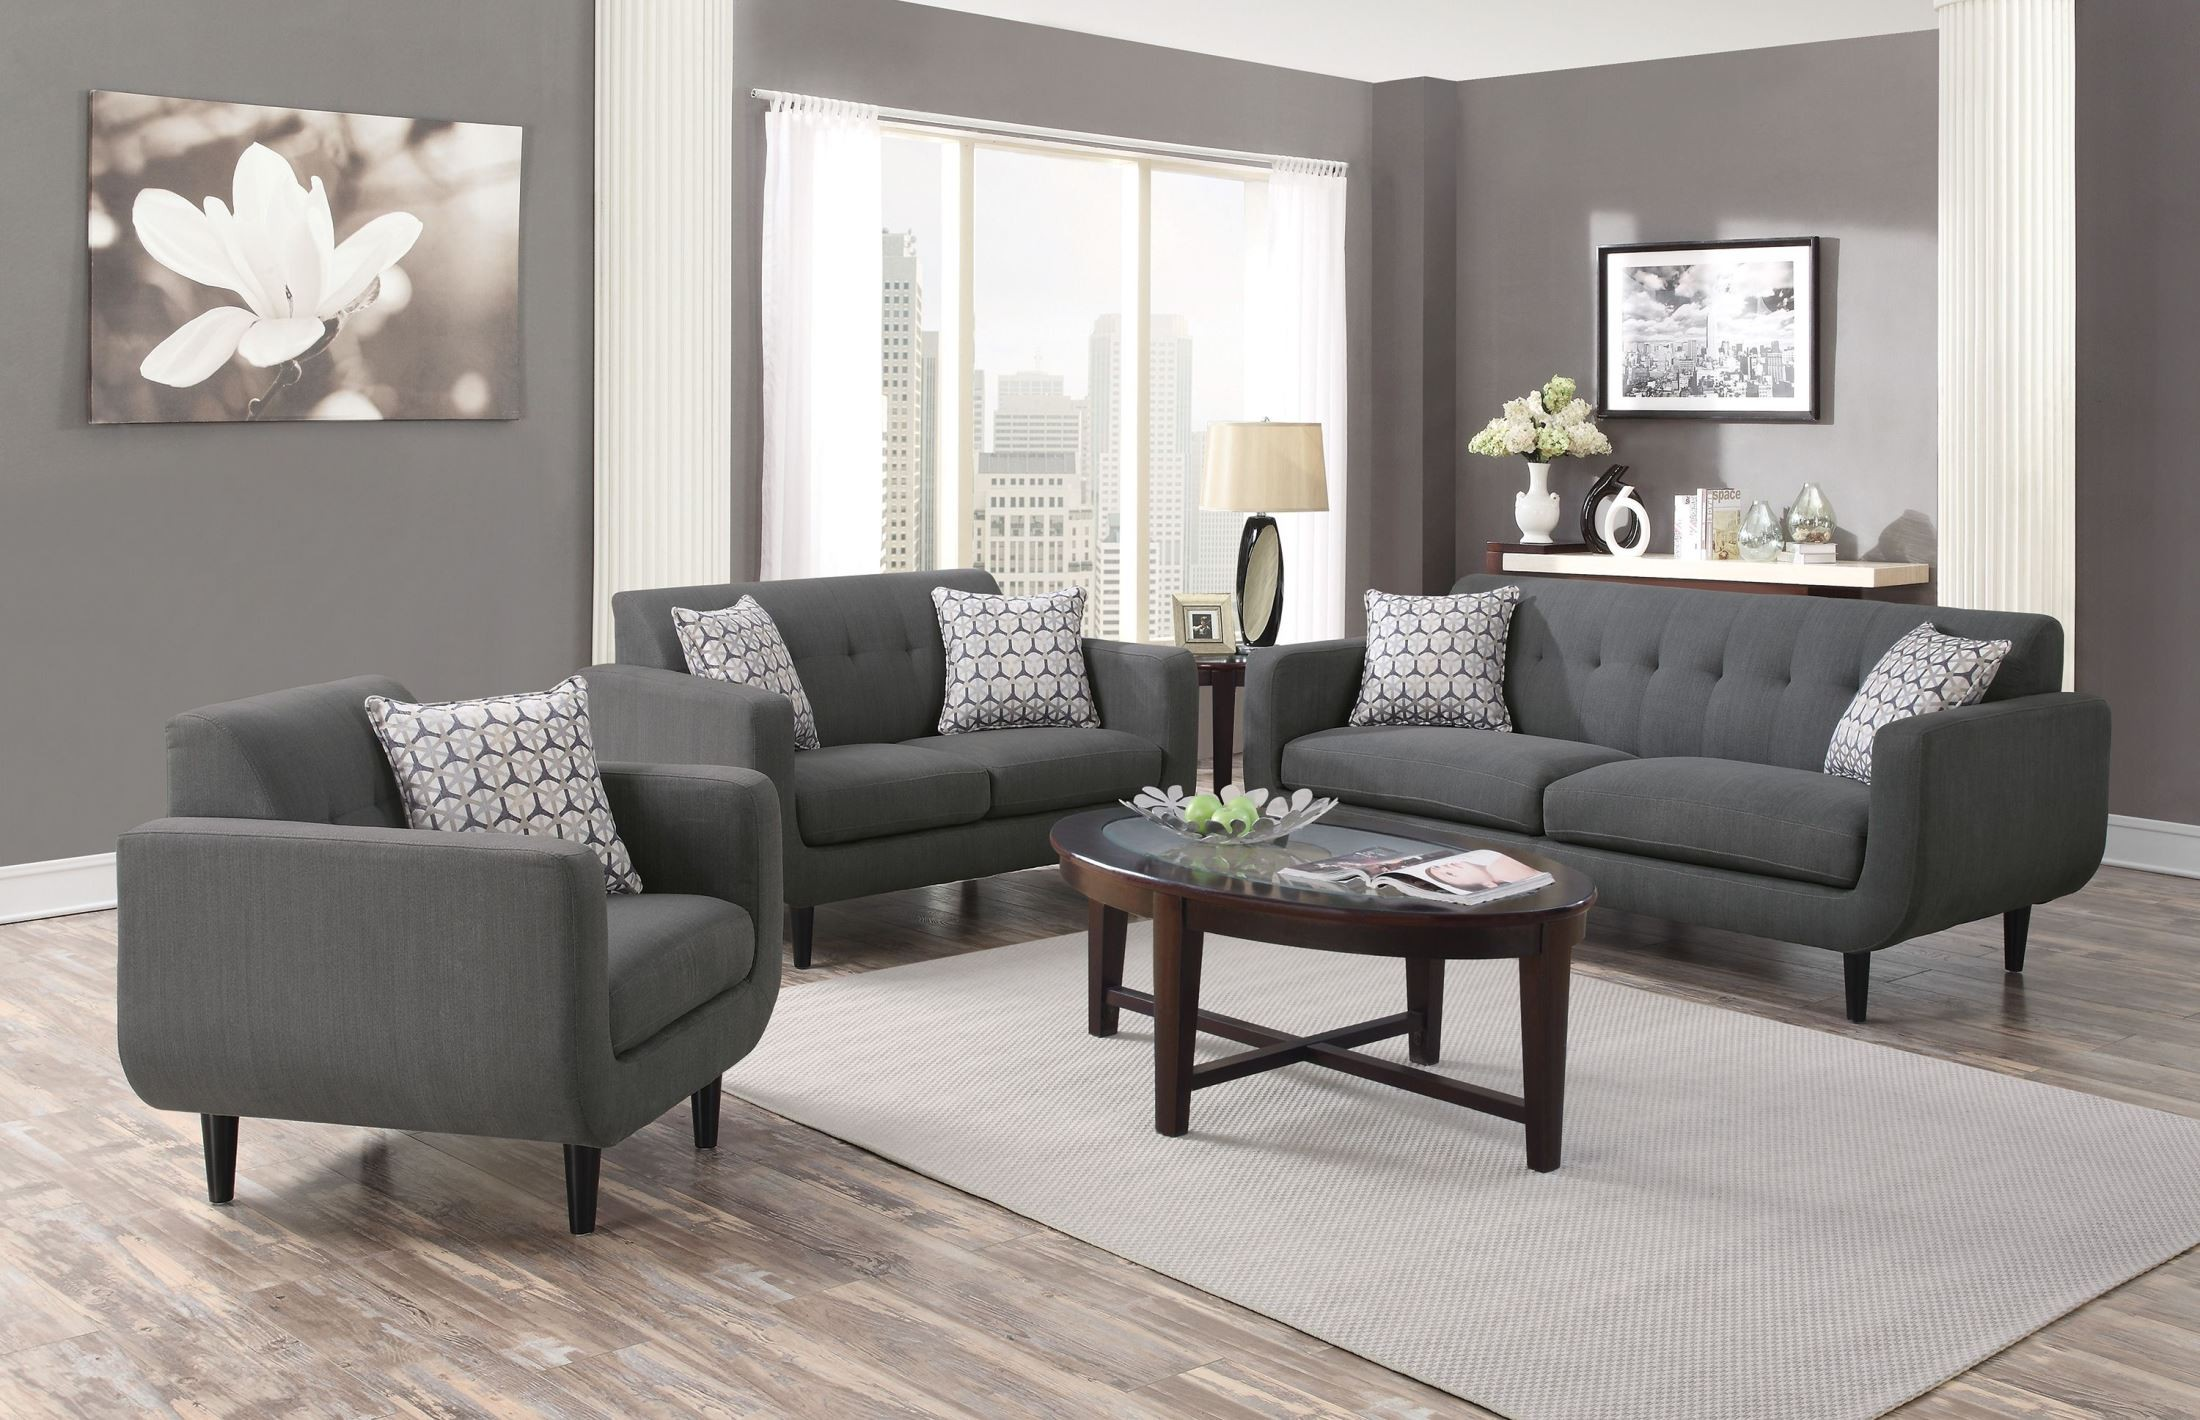 Stansall grey living room set 505201 coaster for Living room sets